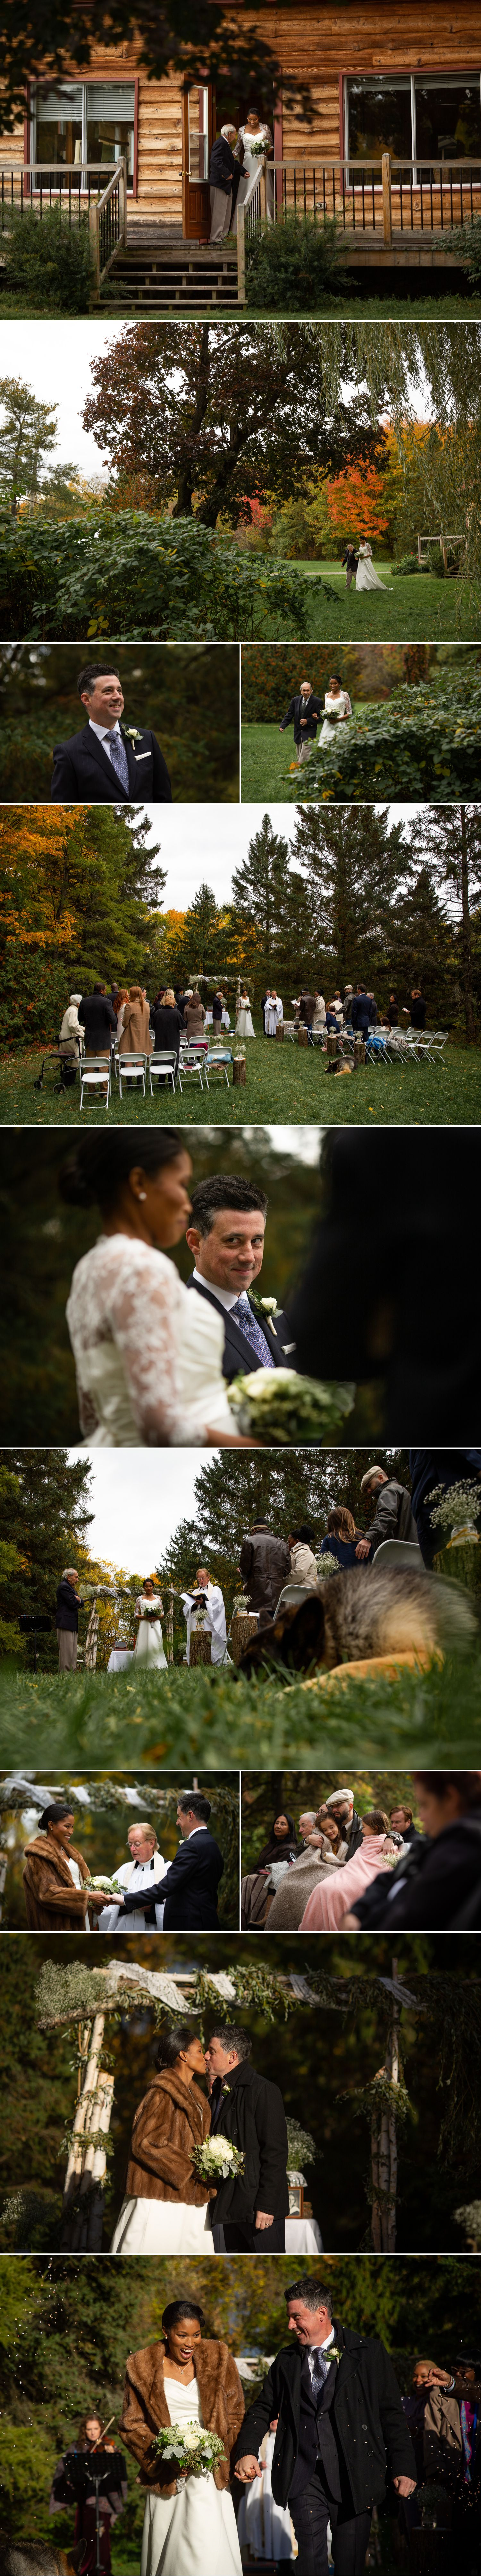 A outdoor fall wedding ceremony that took place at the family farm of the bride's grandparents